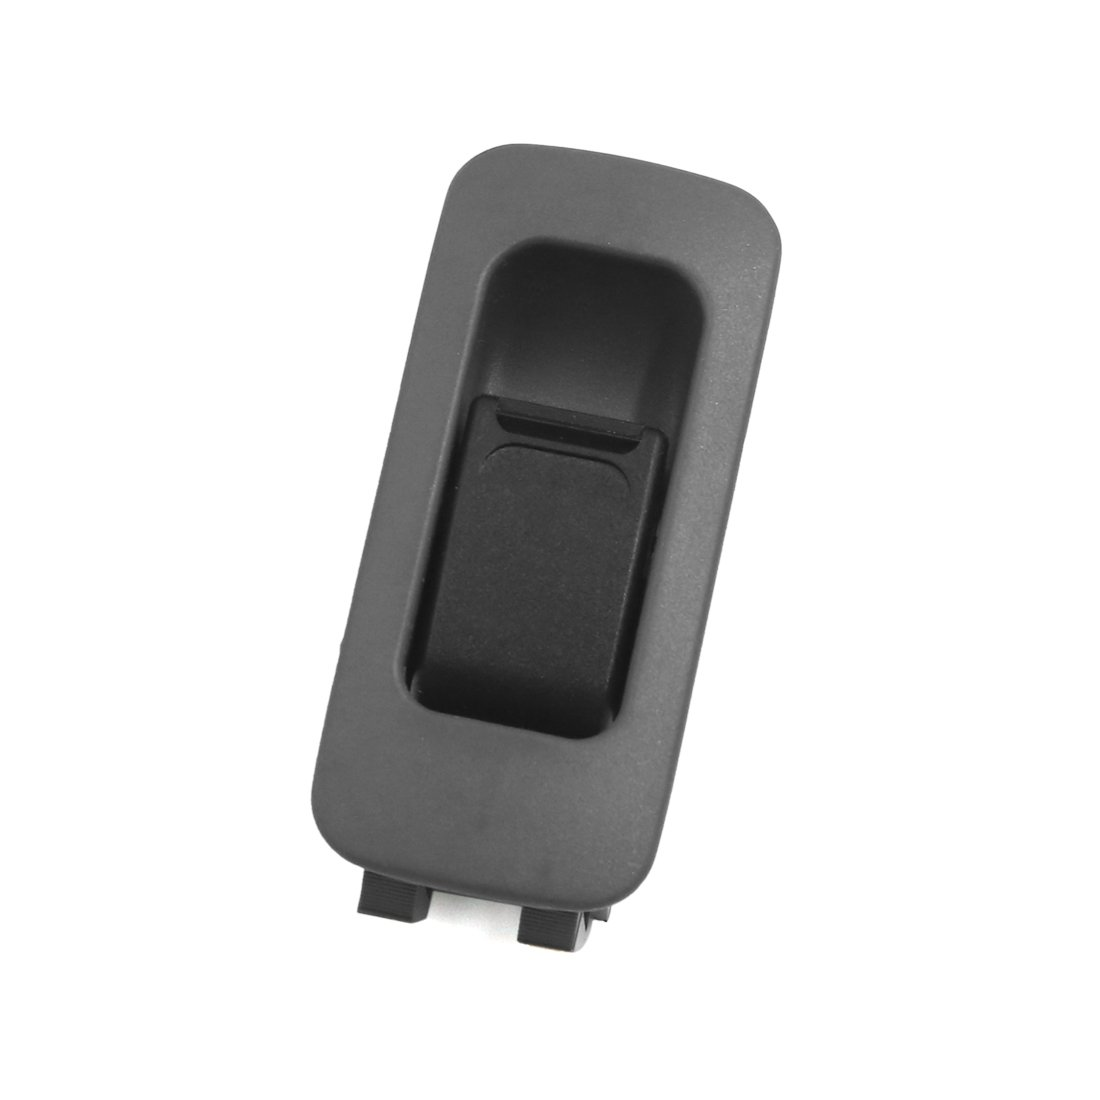 uxcell/® Passenger Side Electric Power Window Control Switch for 1999-2004 Chevrolet Tracker 37995-75F00